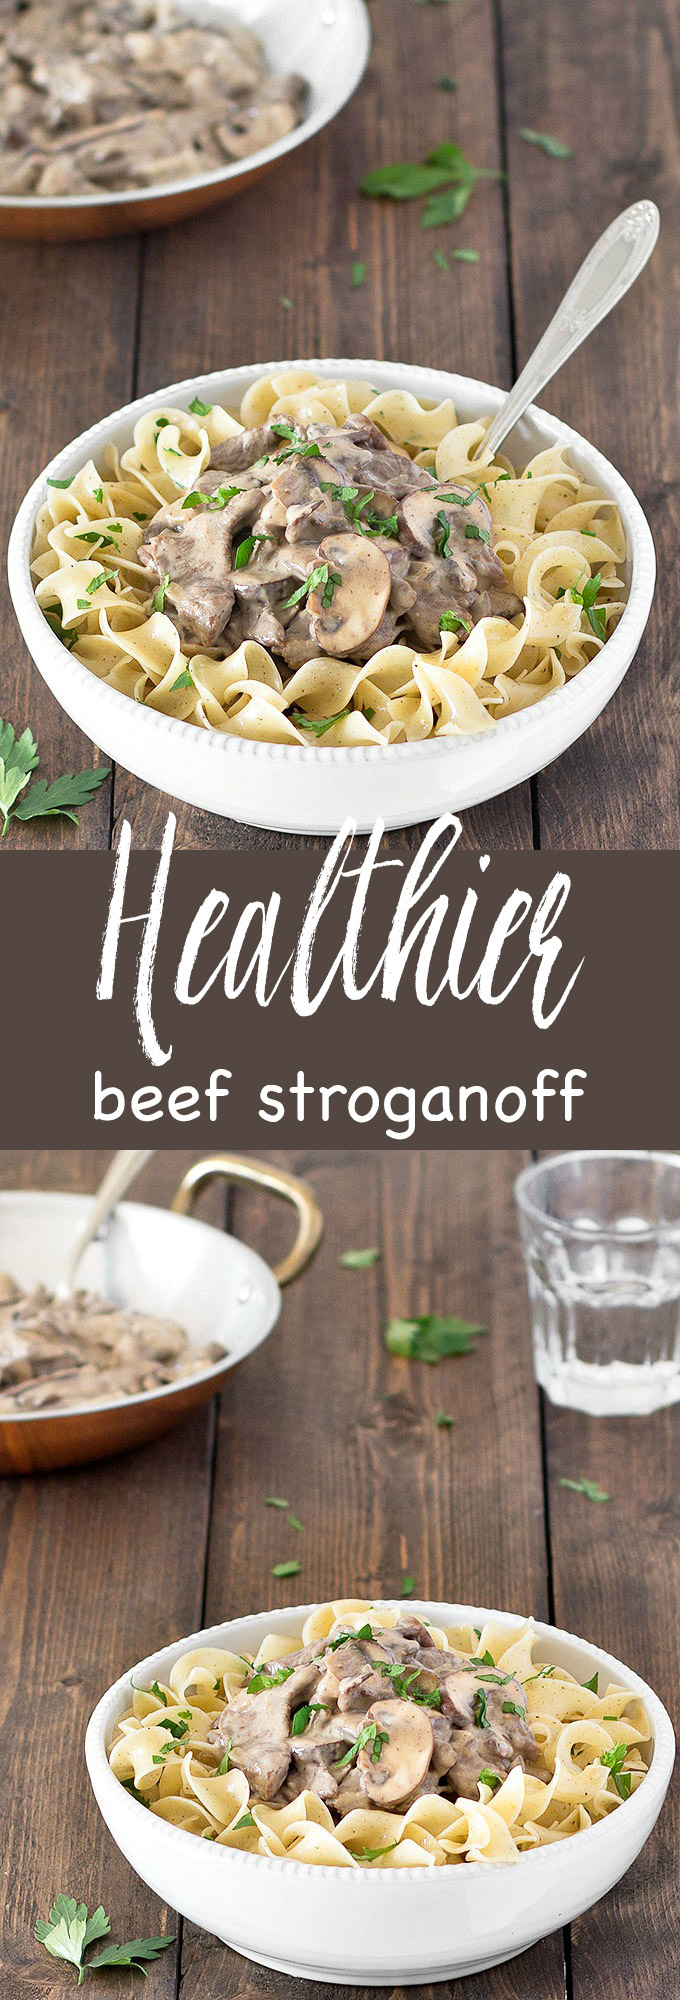 This healthier beef stroganoff takes just 30 minutes to make. It uses no butter or sour cream and it's just as tasty as the full-fat version. #beef #stroganoff #healthy #recipe #lightenup #weeknightmeal #dinner #easyrecipes